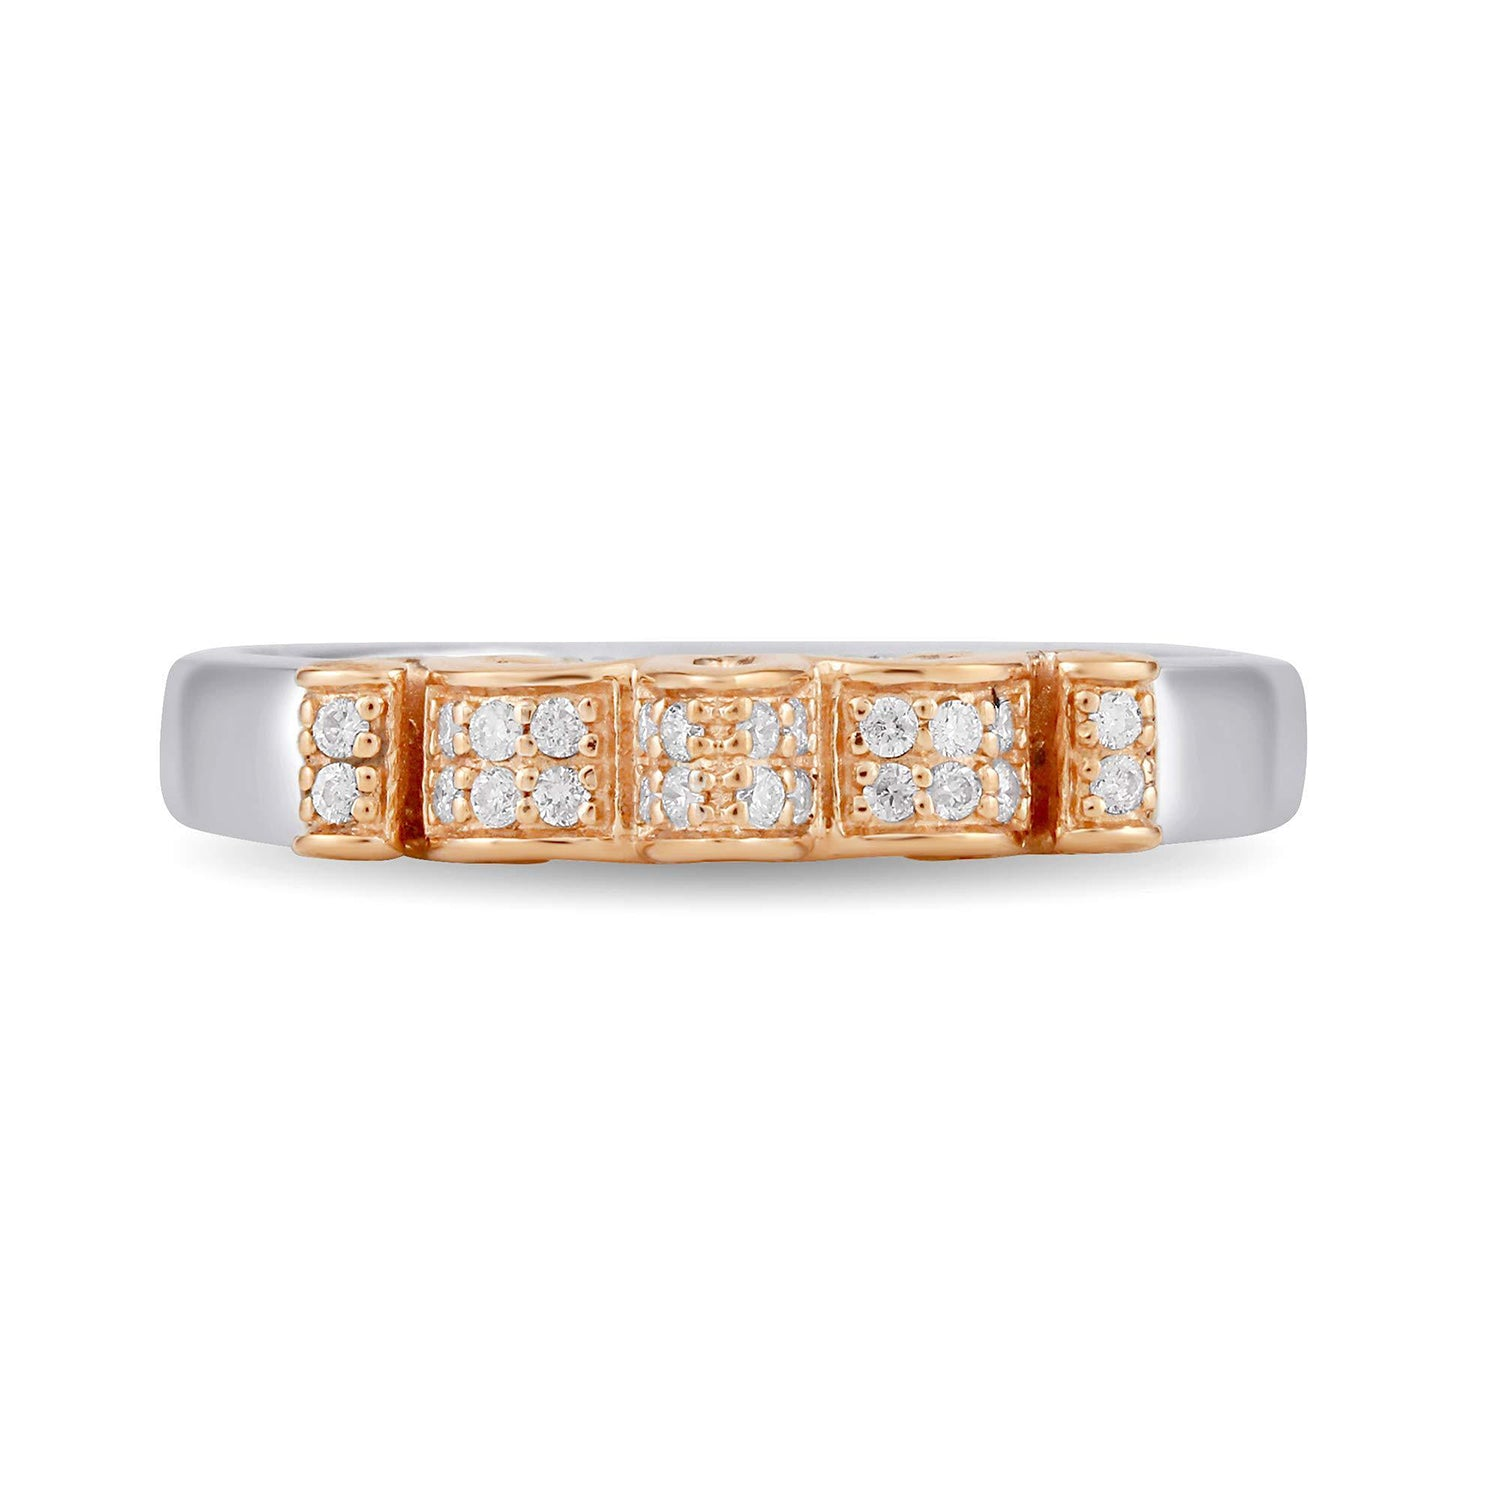 enchanted_disney-majestic-princess_ring-rose_gold_and_sterling_silver_1/8CTTW_3